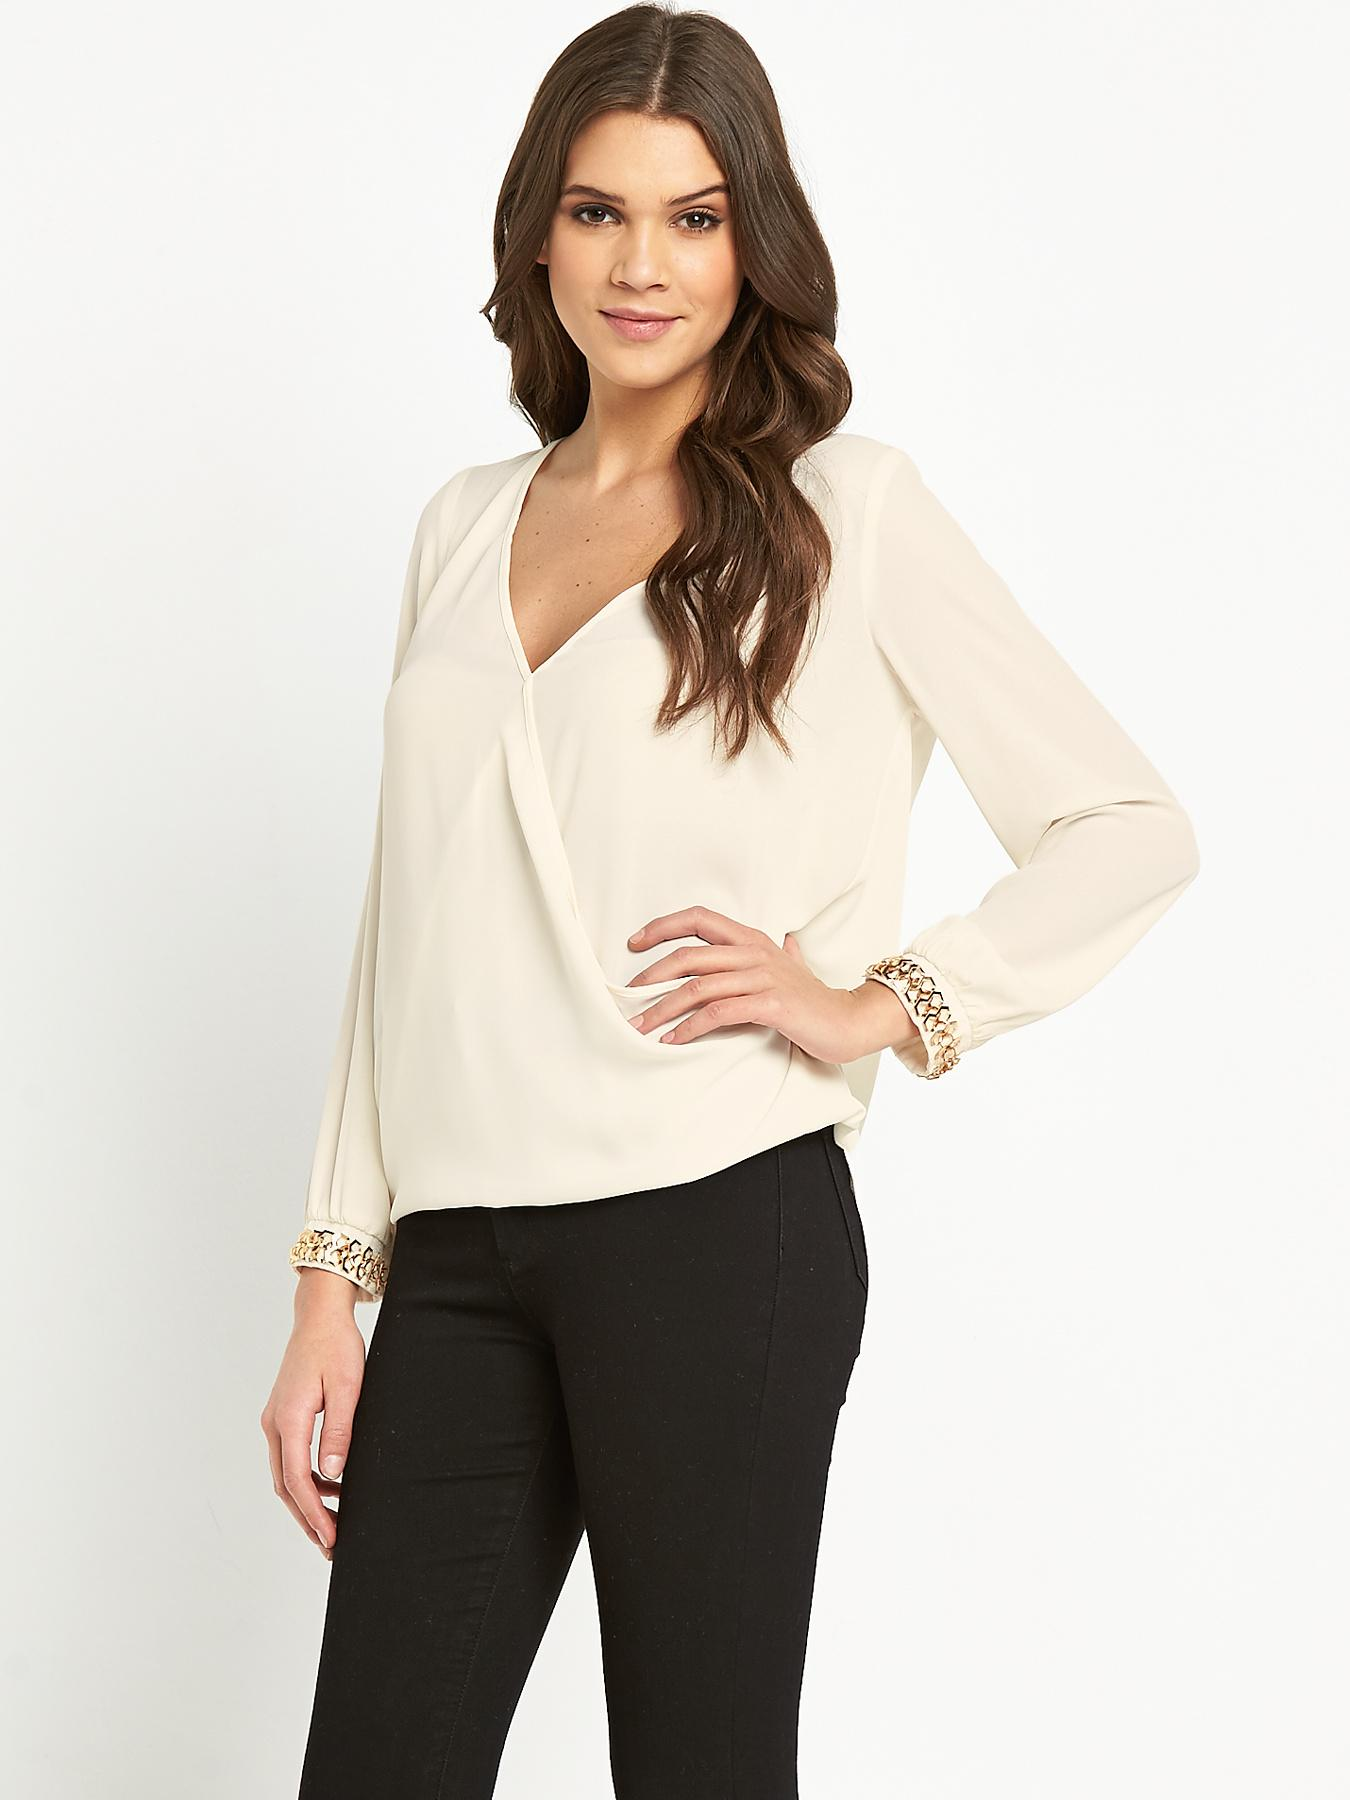 Lipsy Michelle Keegan Cuff Blouse - Cream, Cream